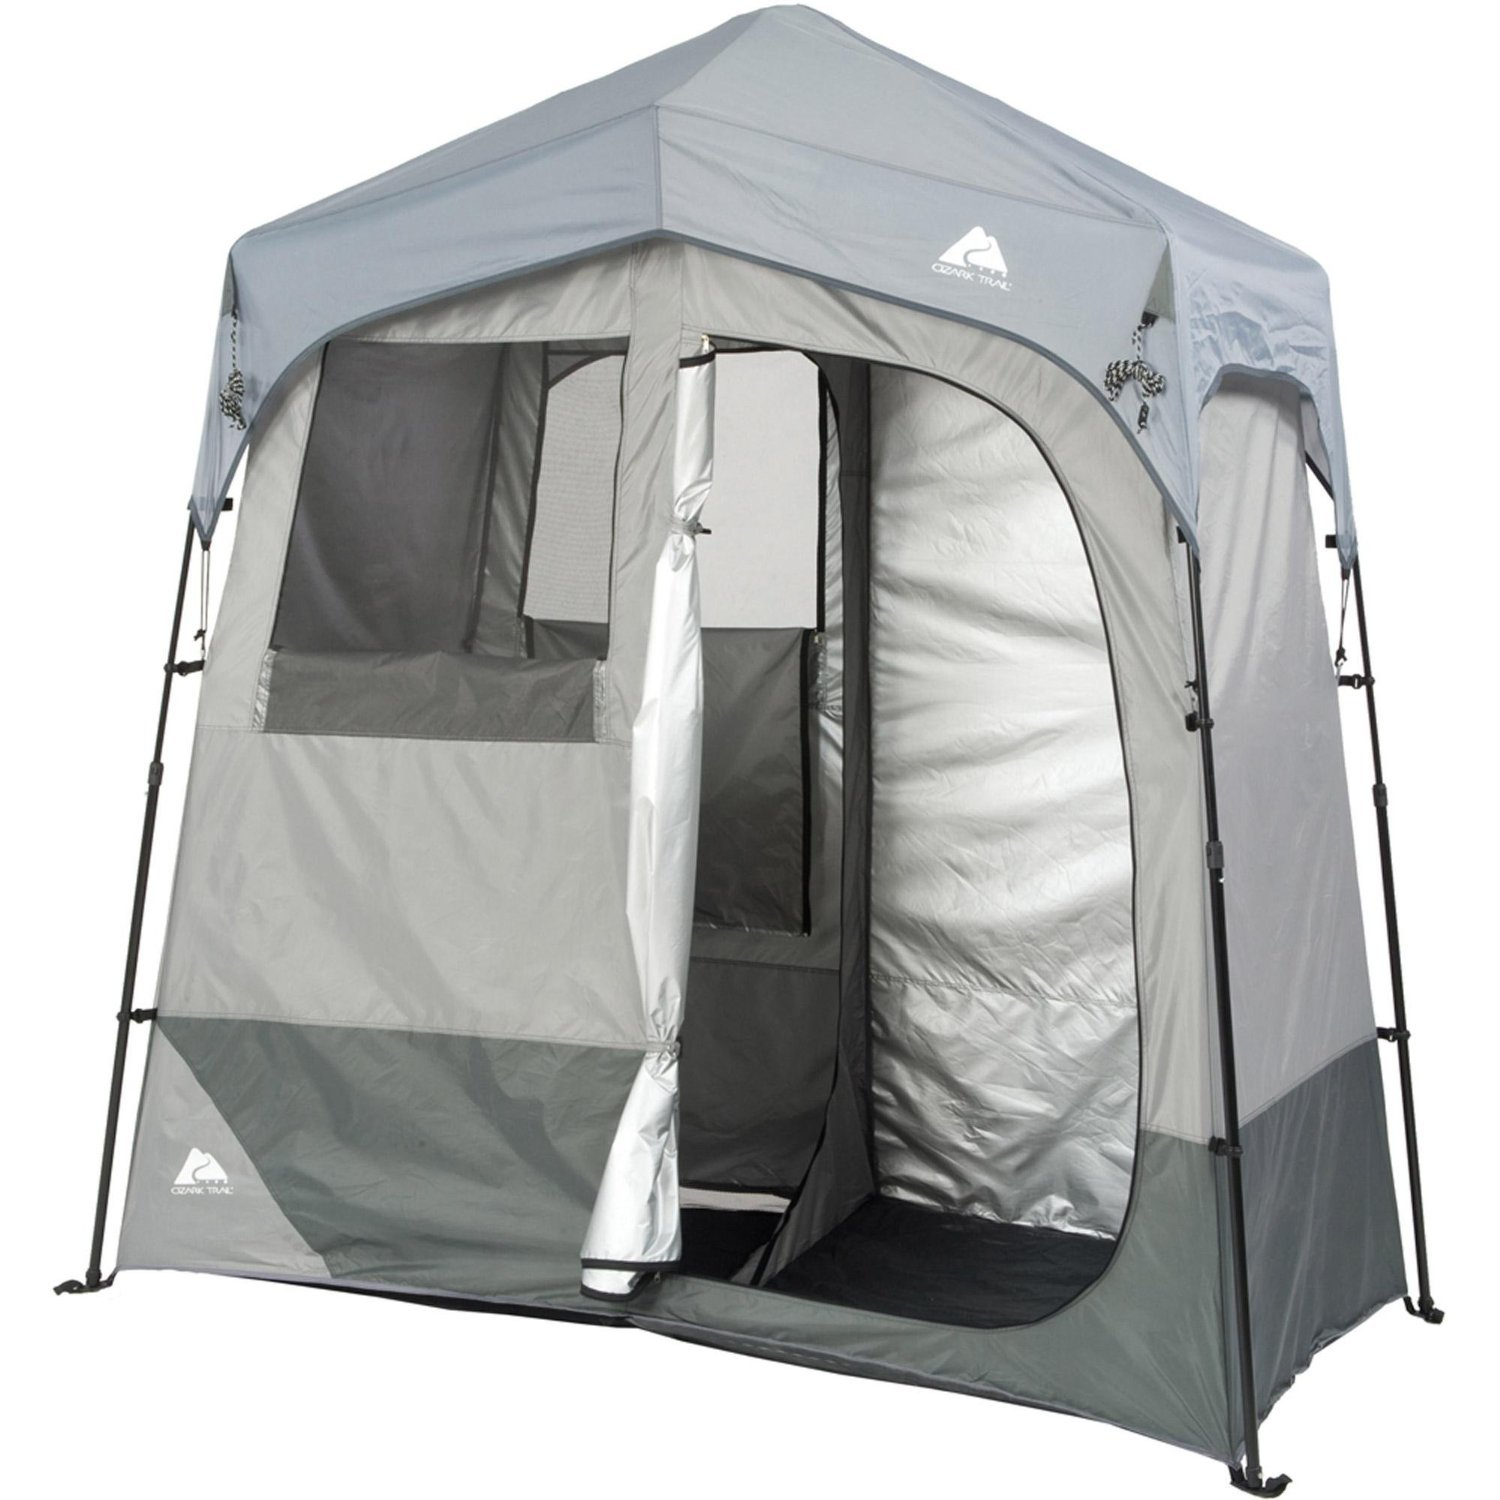 Amazon.com  Ozark Trail Instant 2-Room Shower/Changing Shelter Outdoor  Sports u0026 Outdoors  sc 1 st  Amazon.com & Amazon.com : Ozark Trail Instant 2-Room Shower/Changing Shelter ...